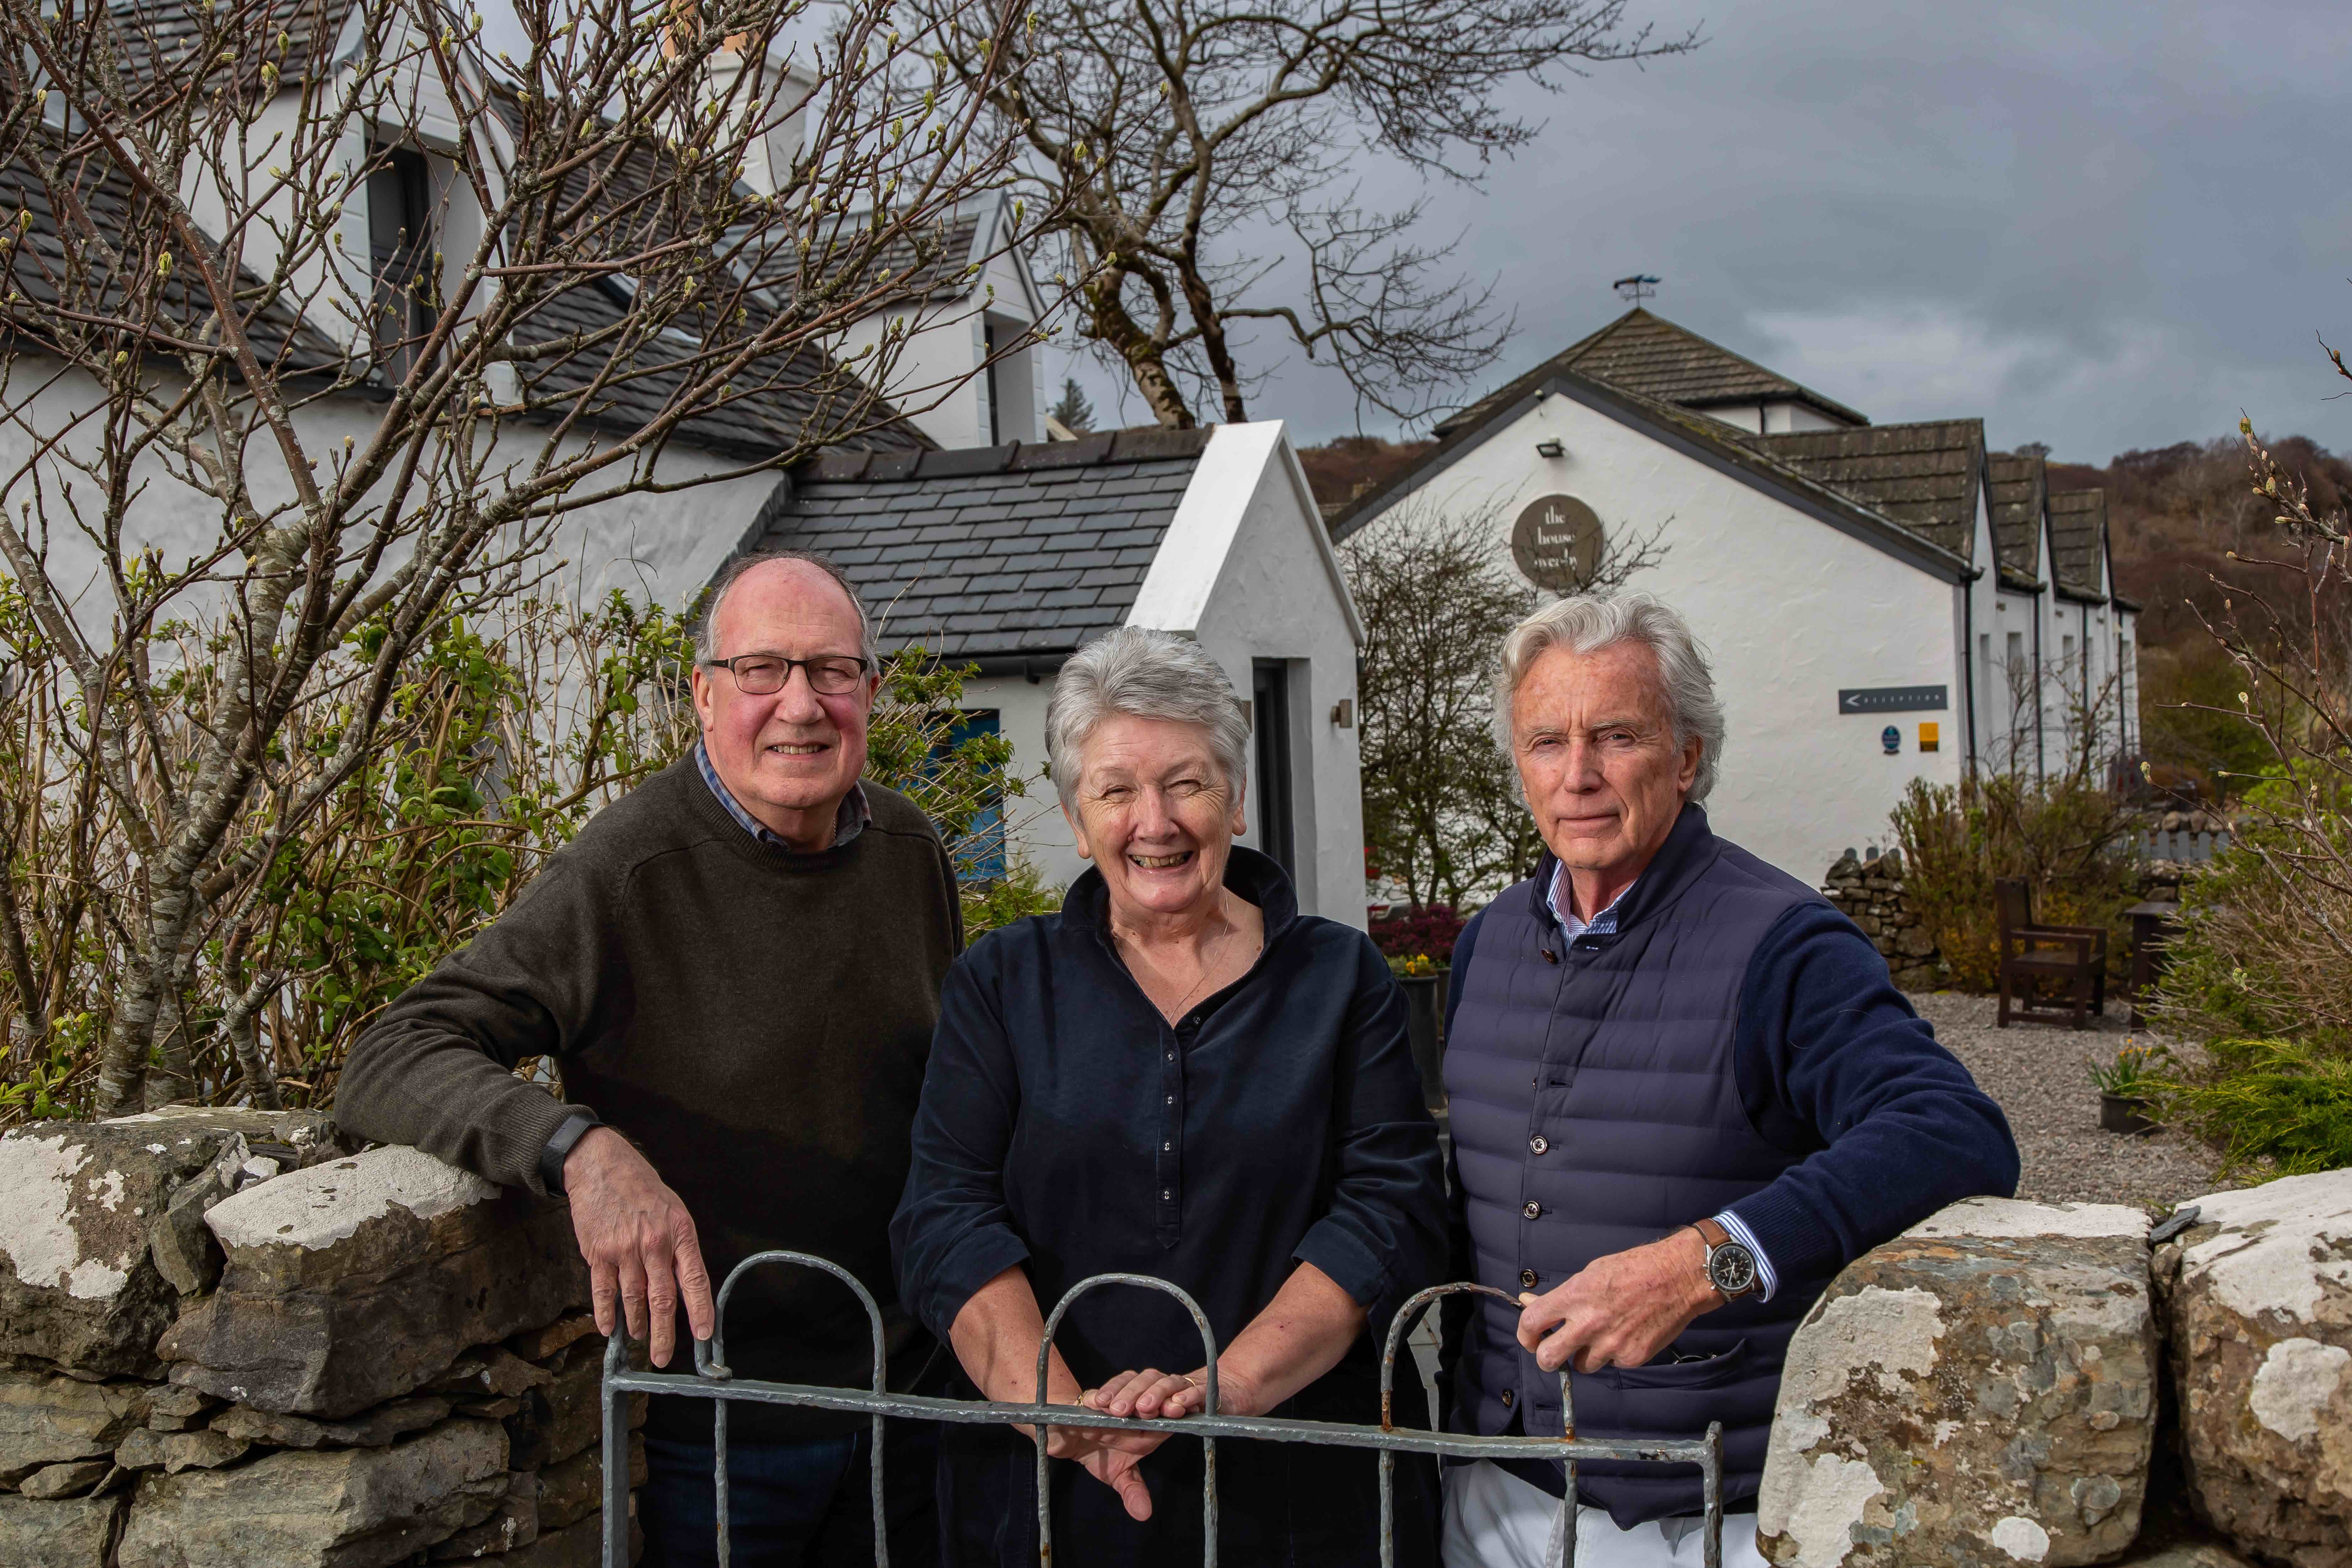 Eddie and Shirley Spear with new owner of The Three Chimneys Gordon Campbell Gray